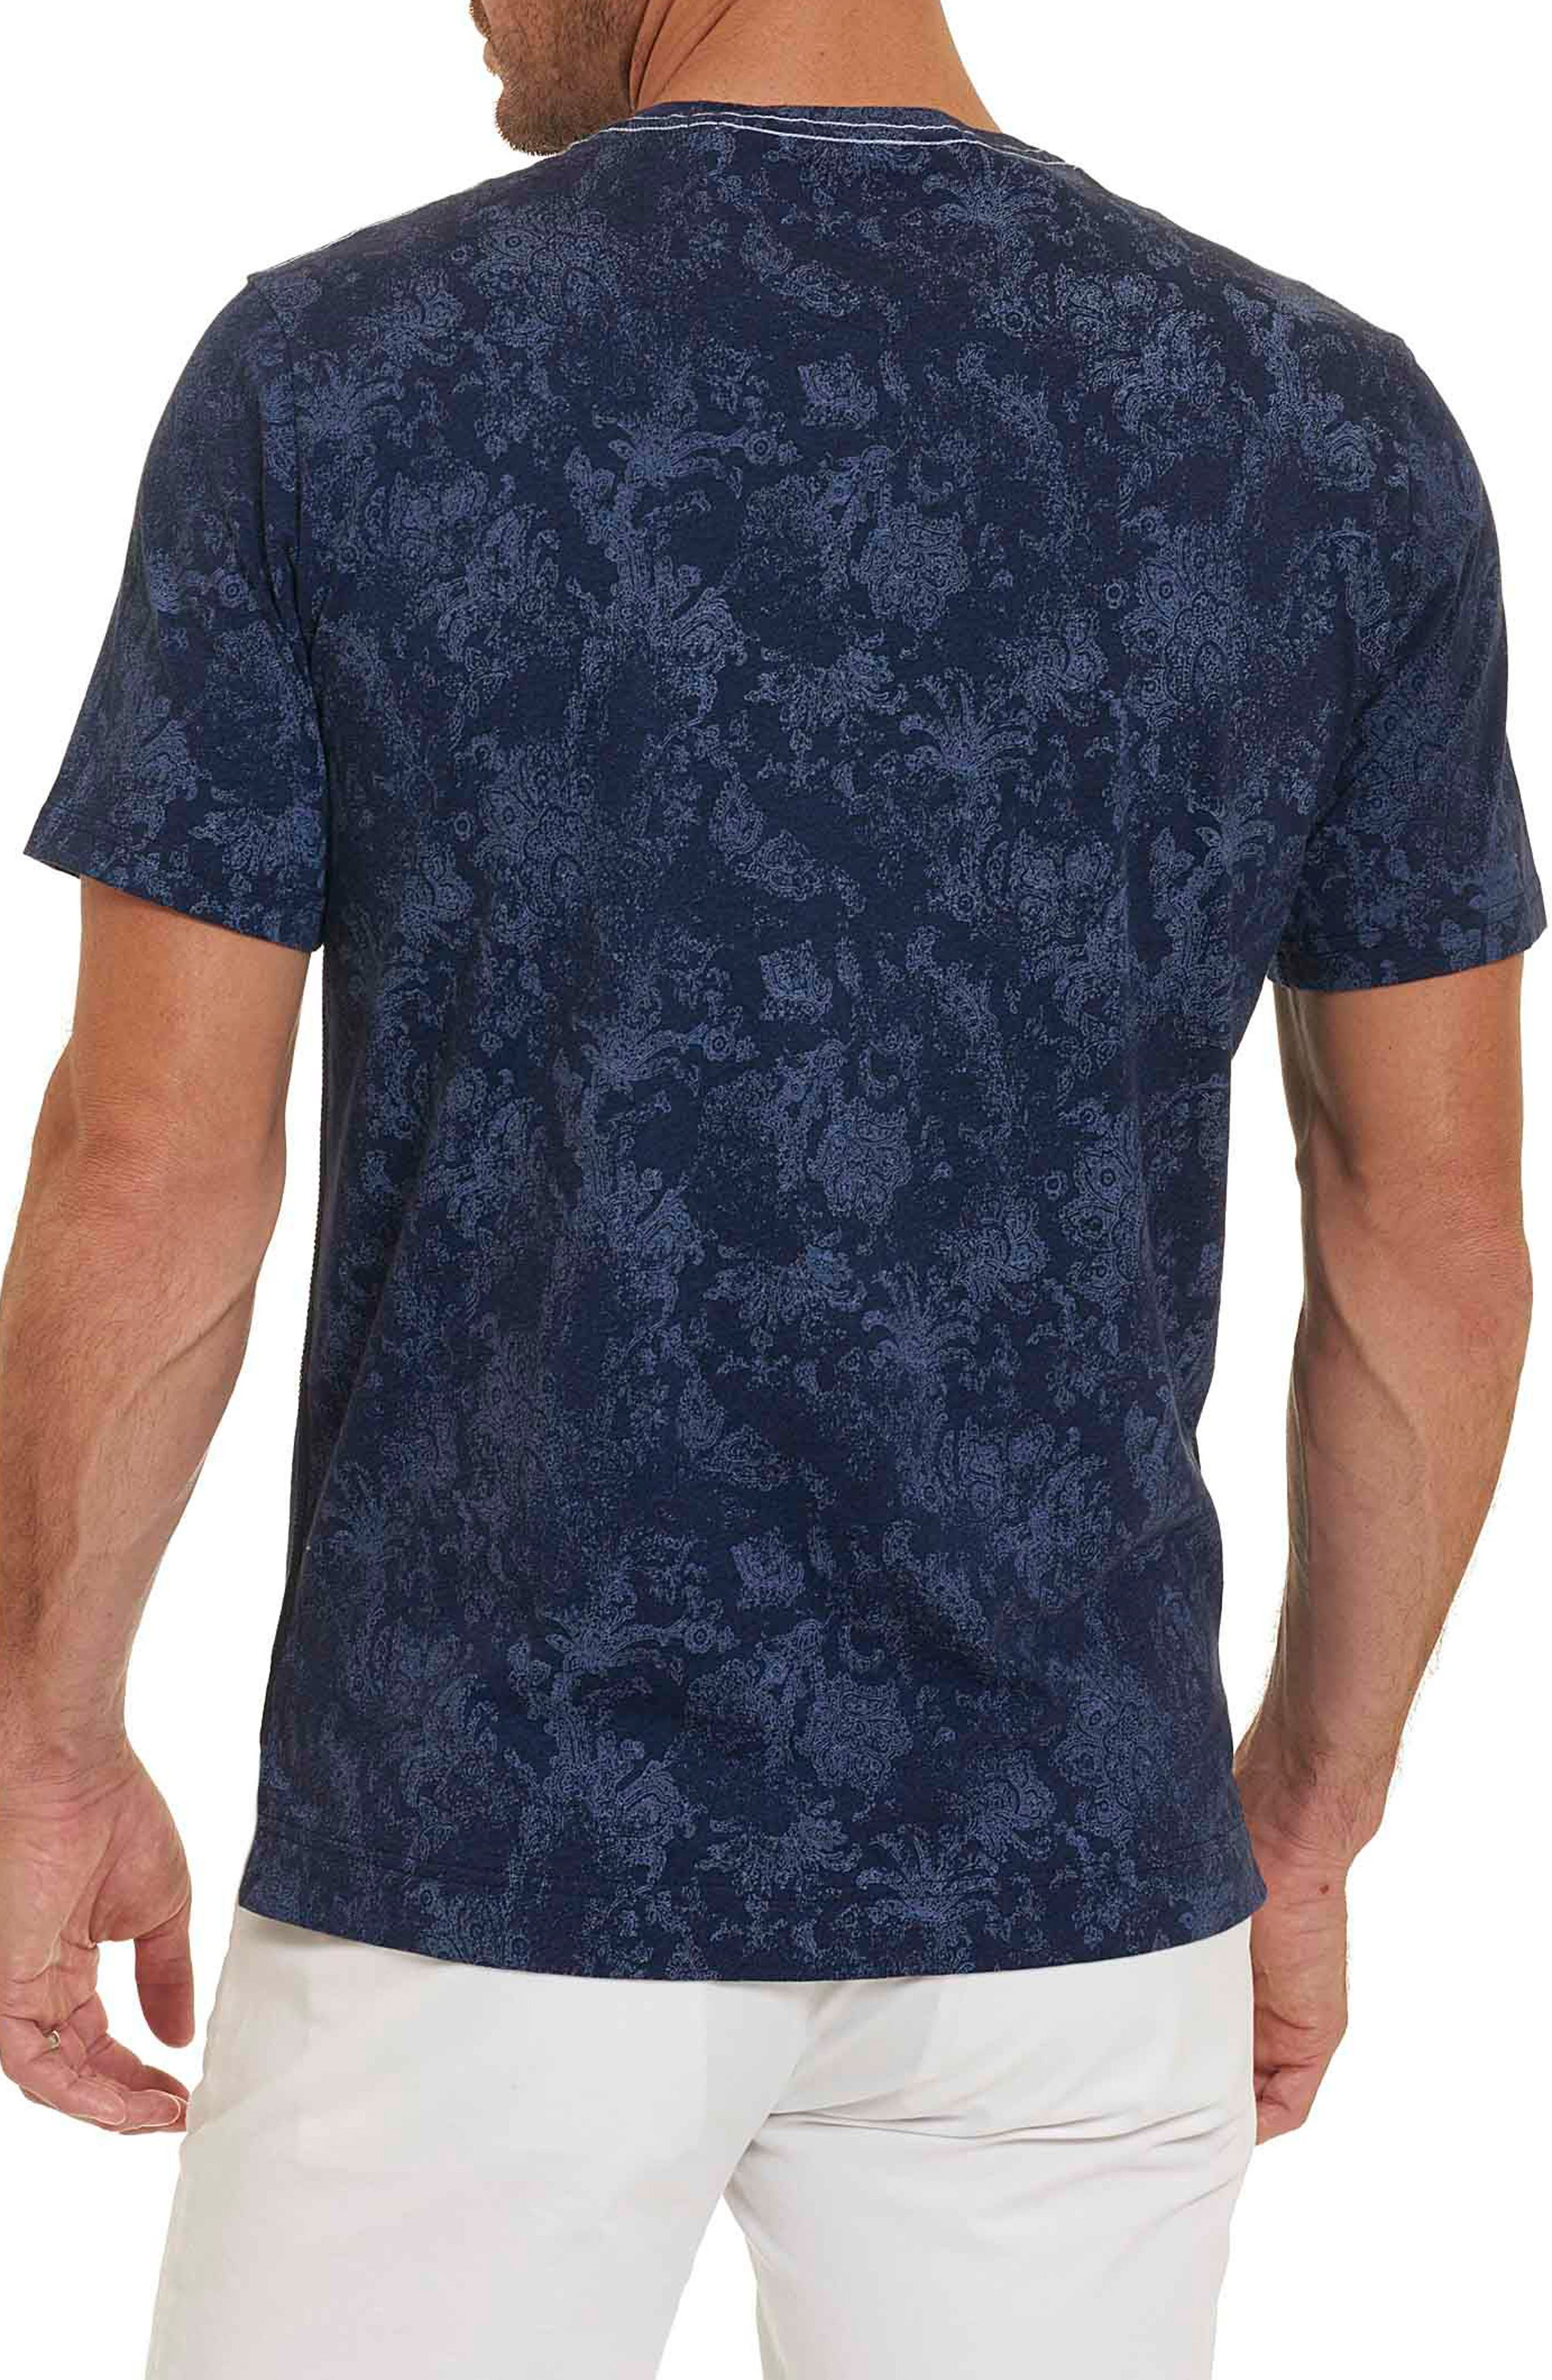 Alternate Image 2  - Robert Graham Rosemead Print T-Shirt